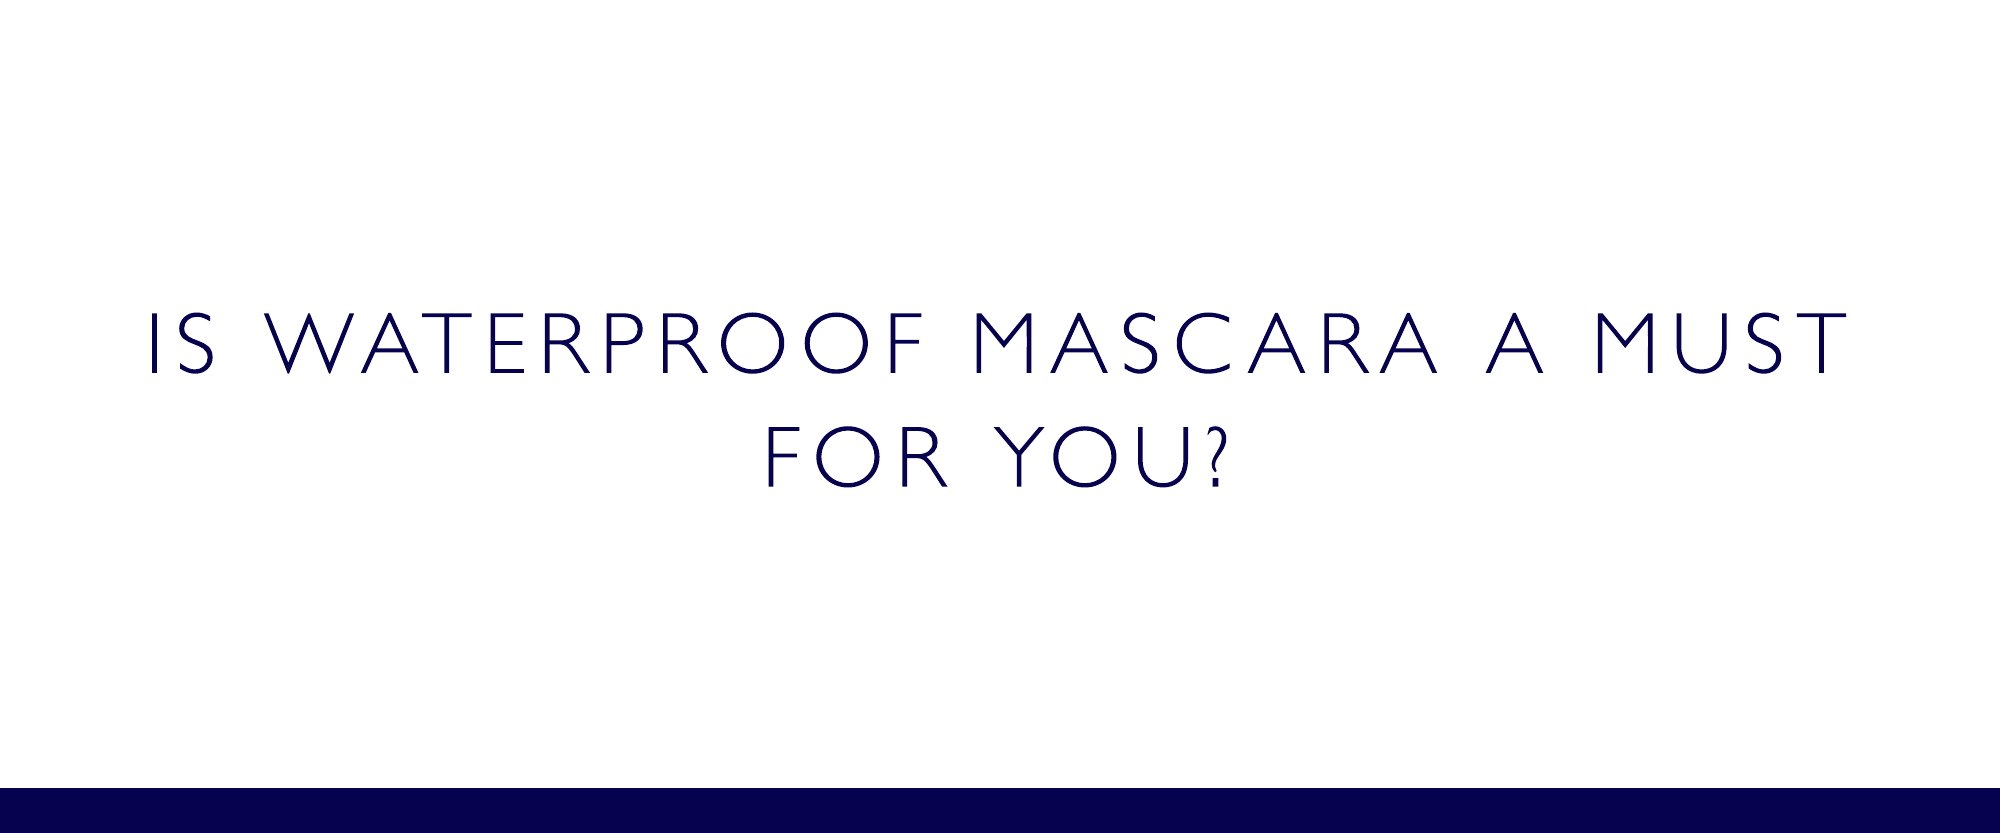 Is waterproof mascara a must for you?